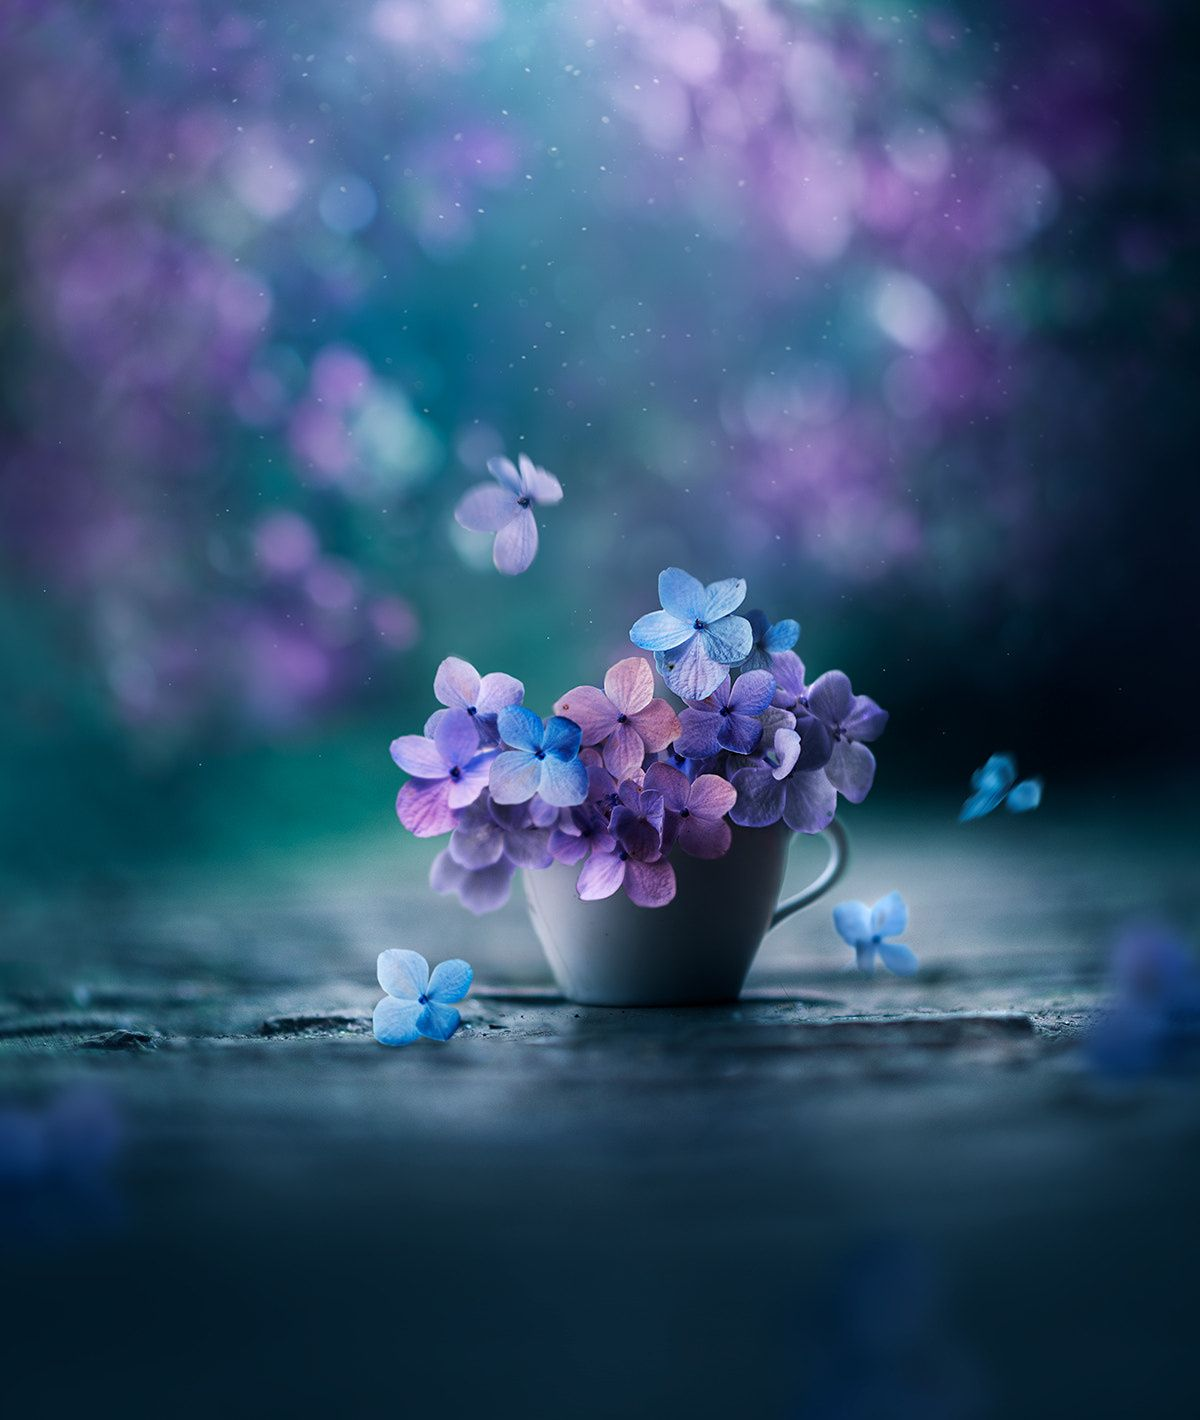 Magical Flower Photography By Ashraful Arefin Ashraful Arefin Photography Flowers Photography Beautiful Nature Flower Wallpaper